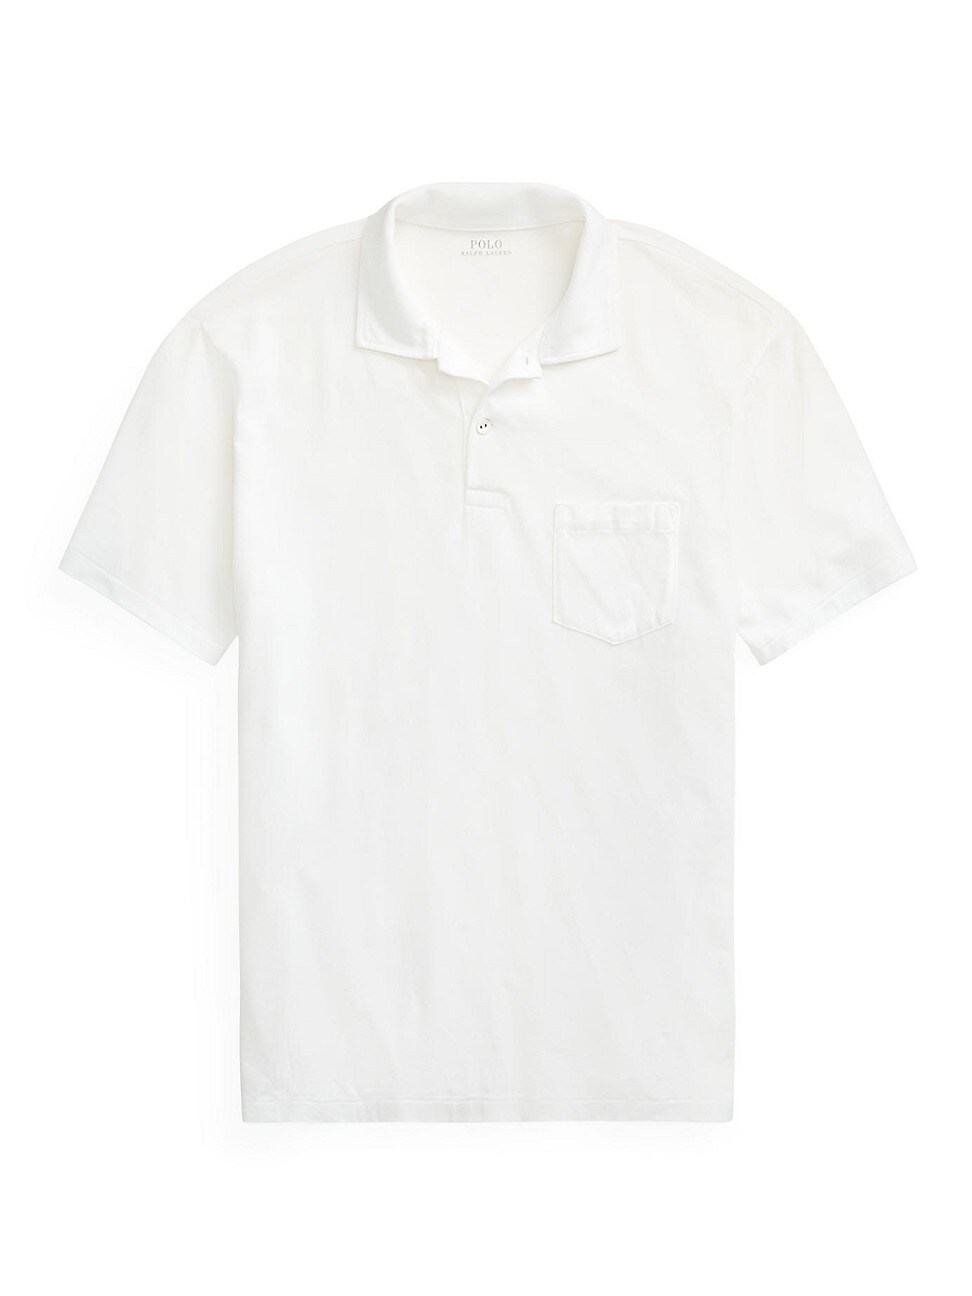 Polo Ralph Lauren MEN'S SUEDED SPA JERSEY POLO